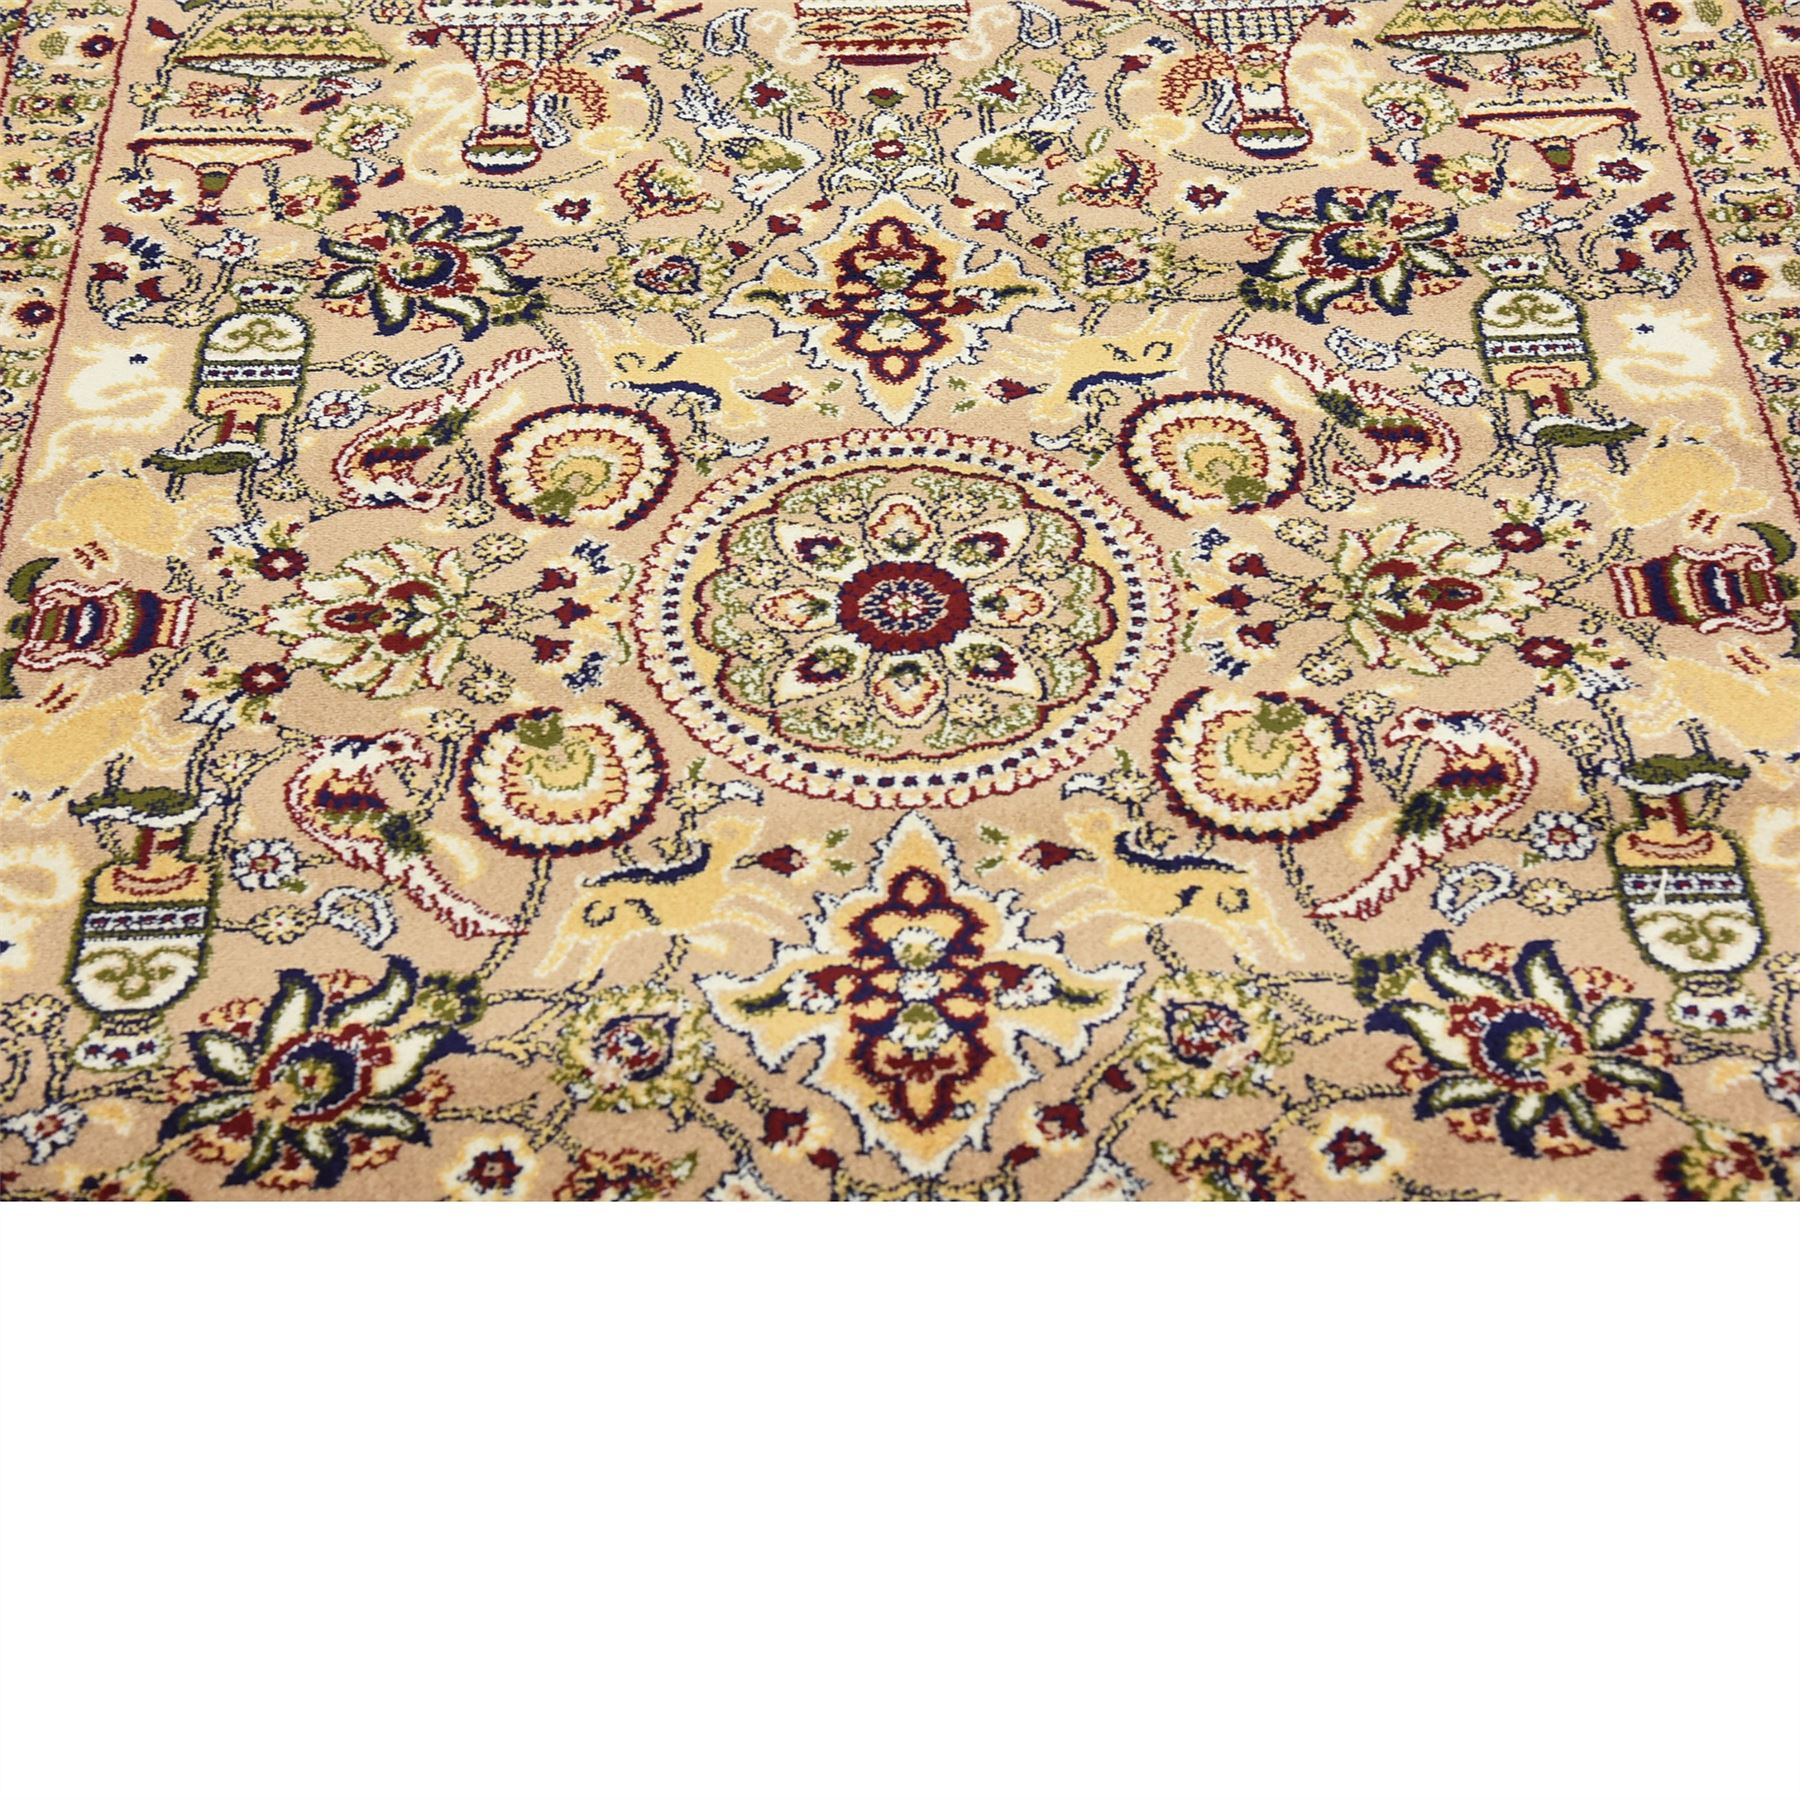 5x8 Hamadan Authentic Rugs Deals Direct Handmade Persian: Traditional Large Persian Design Area Rug Small Vintage